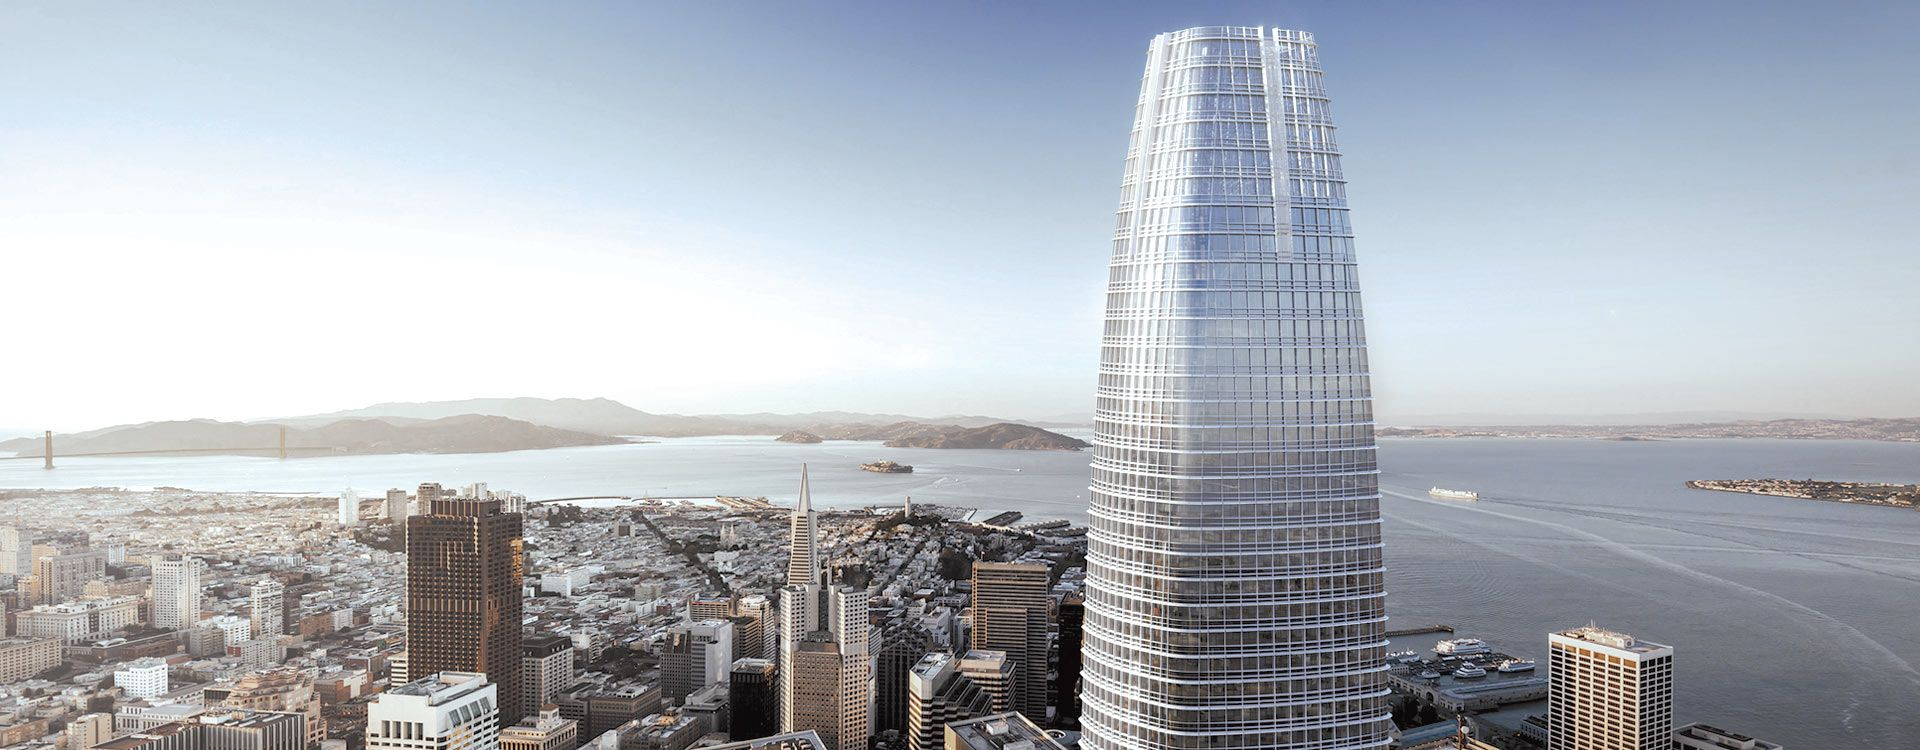 bnr-Salesforce-Tower-High-Rise-EN-US